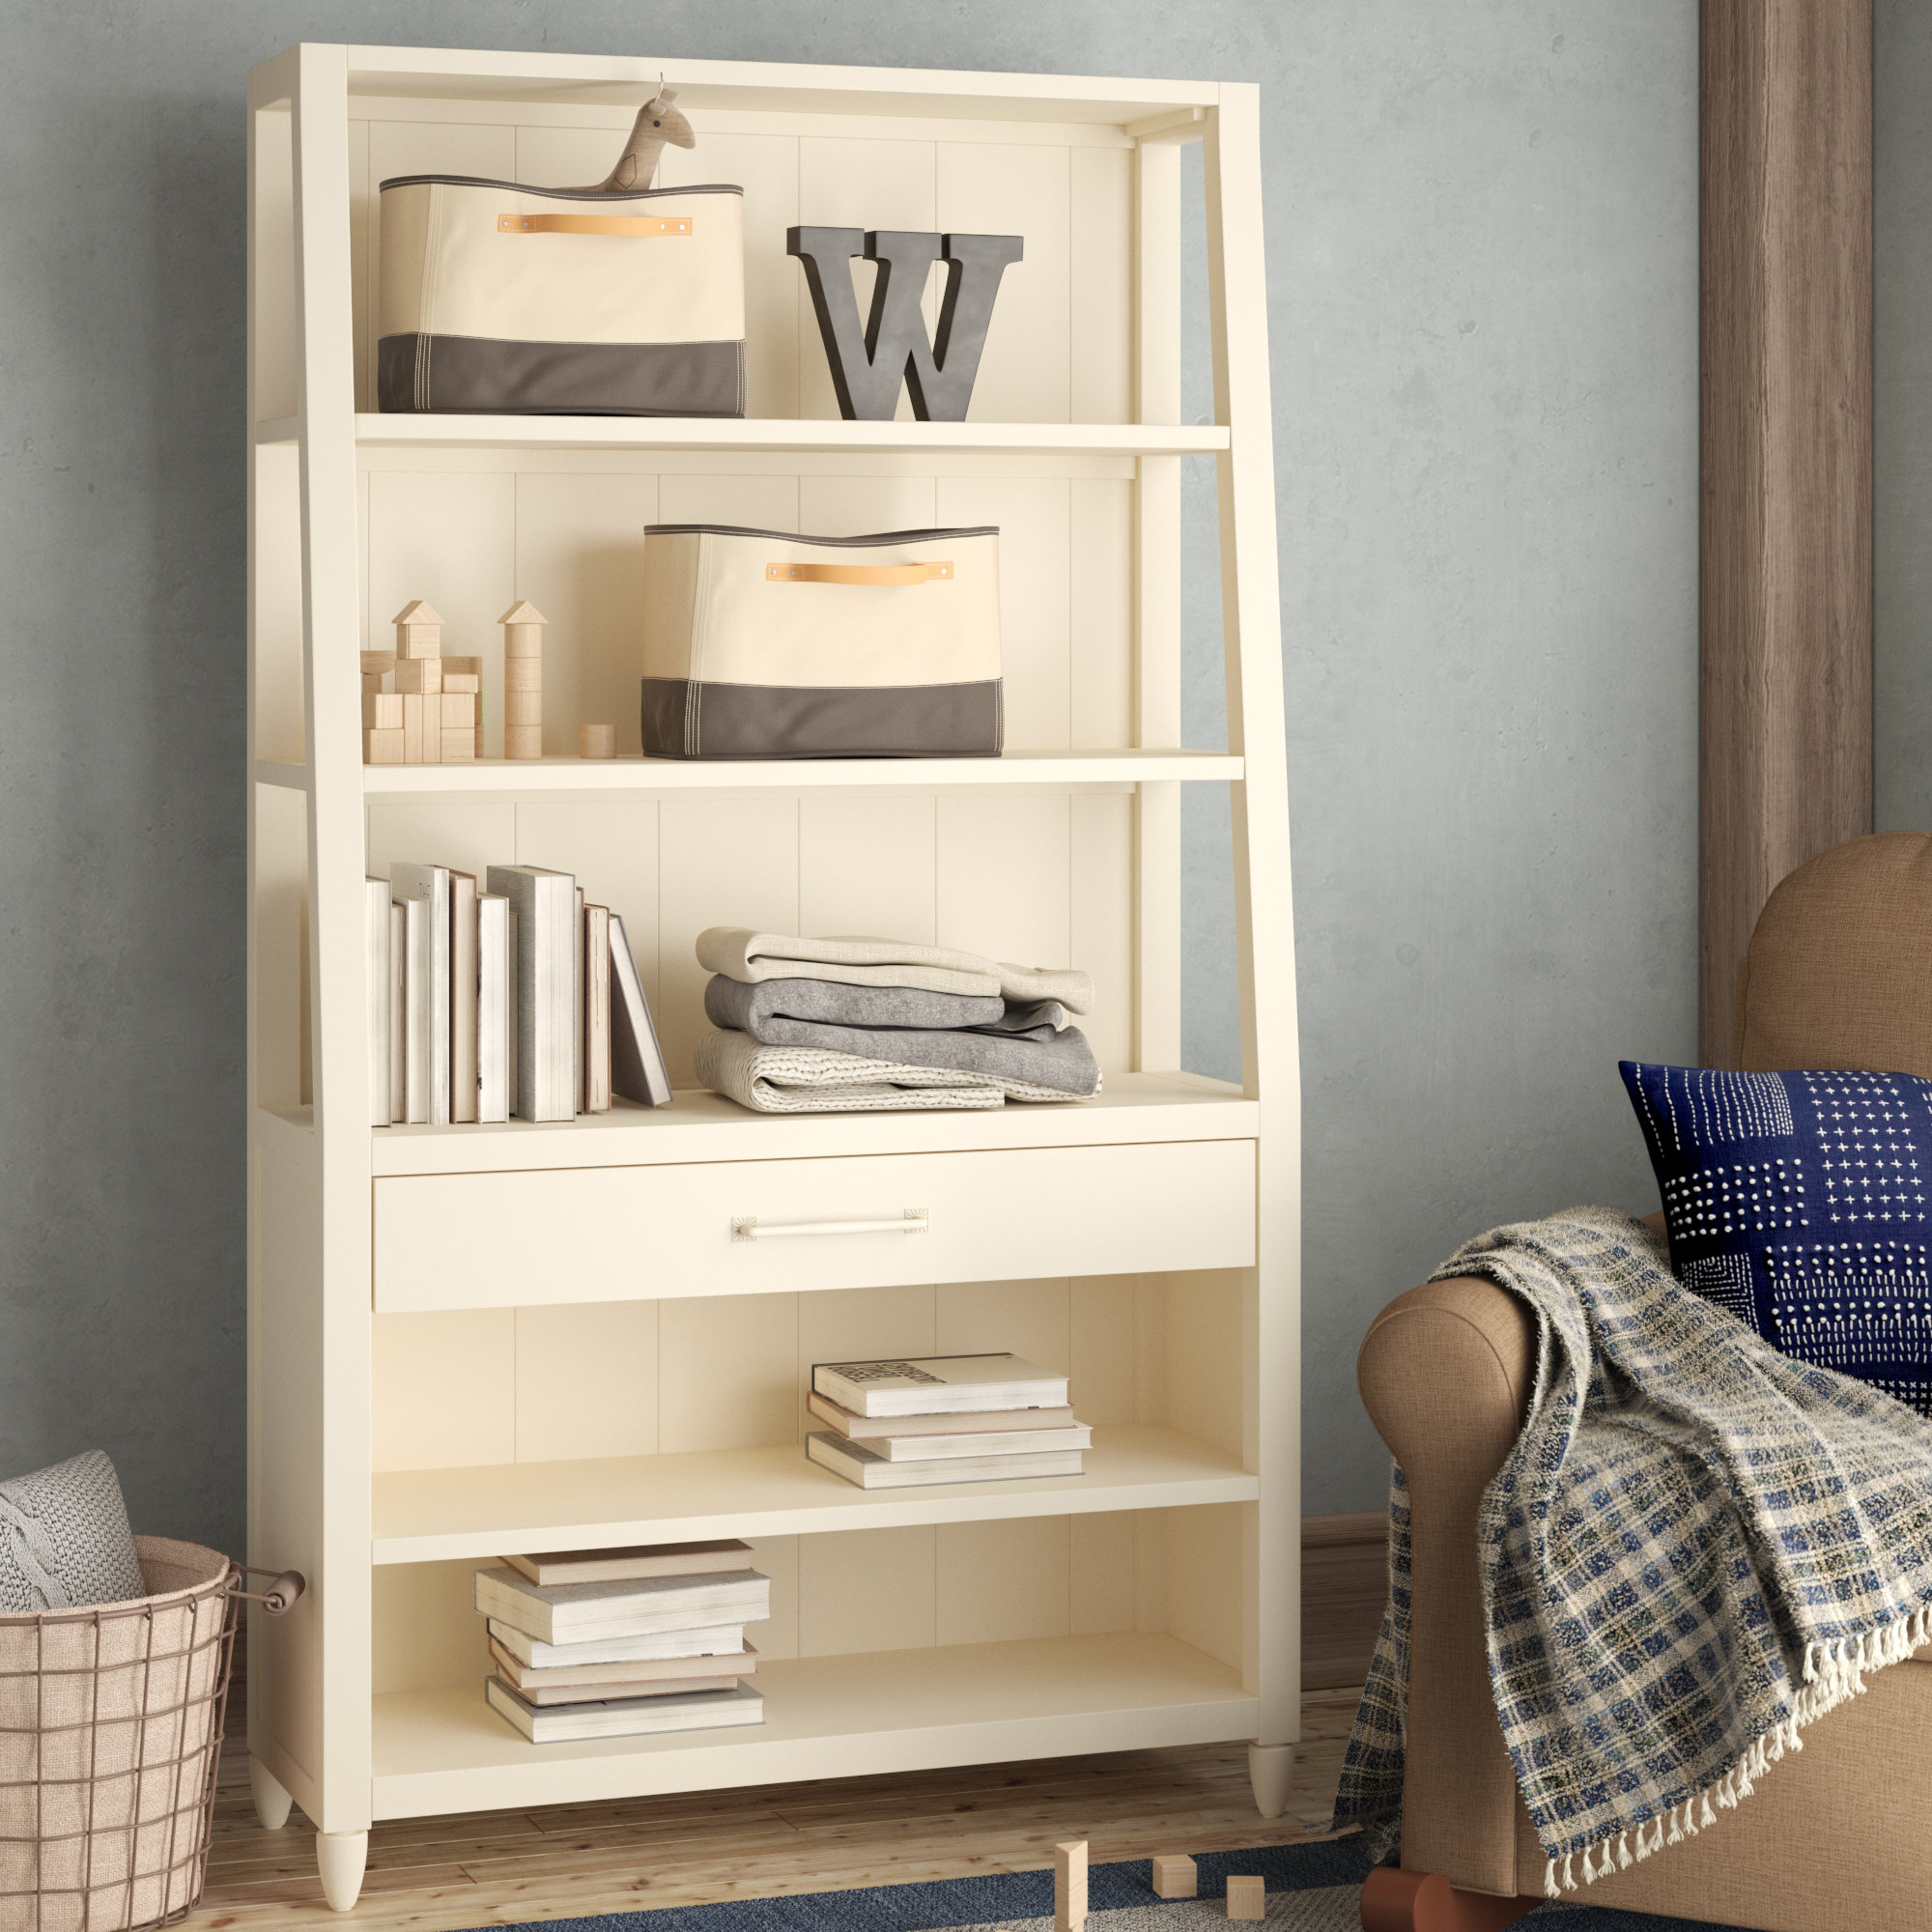 2019 Oridatown Standard Bookcases Intended For Affonso Standard Bookcase & Reviews (View 1 of 20)